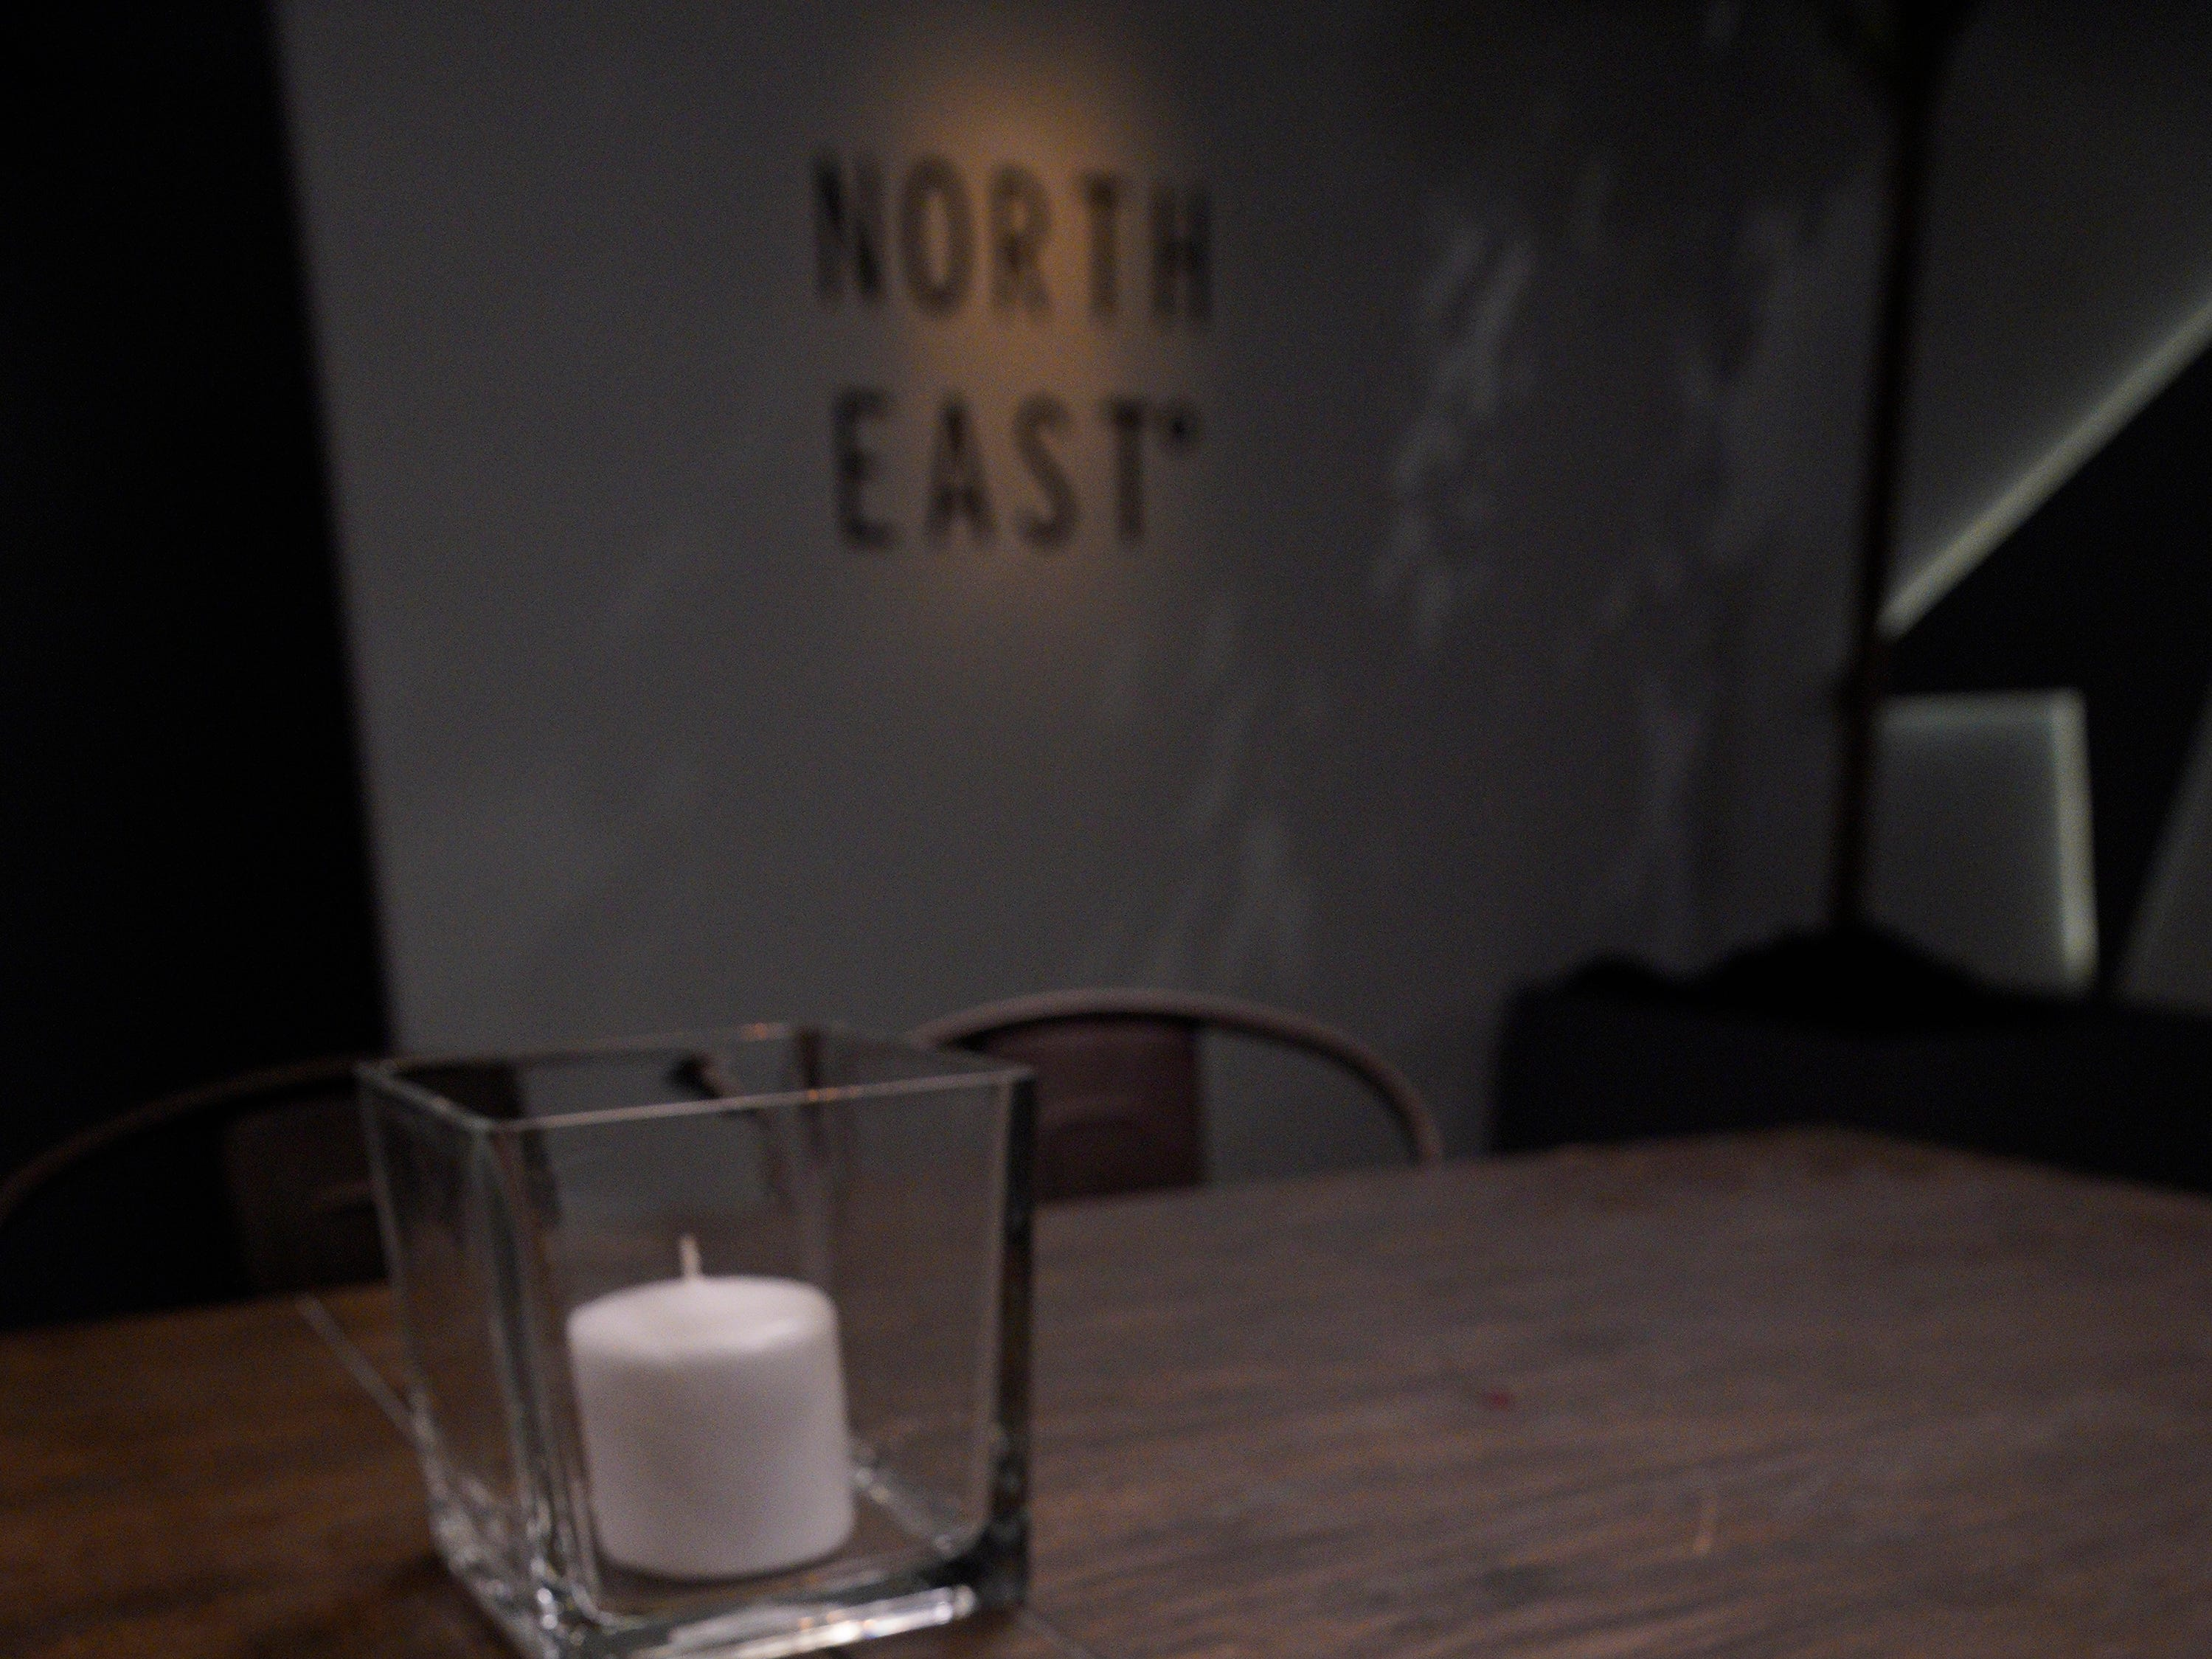 """The menu for North East, one of three restaurants on Restaurant Wars, episode 5 of Bravo's """"Top Chef"""" Kentucky."""